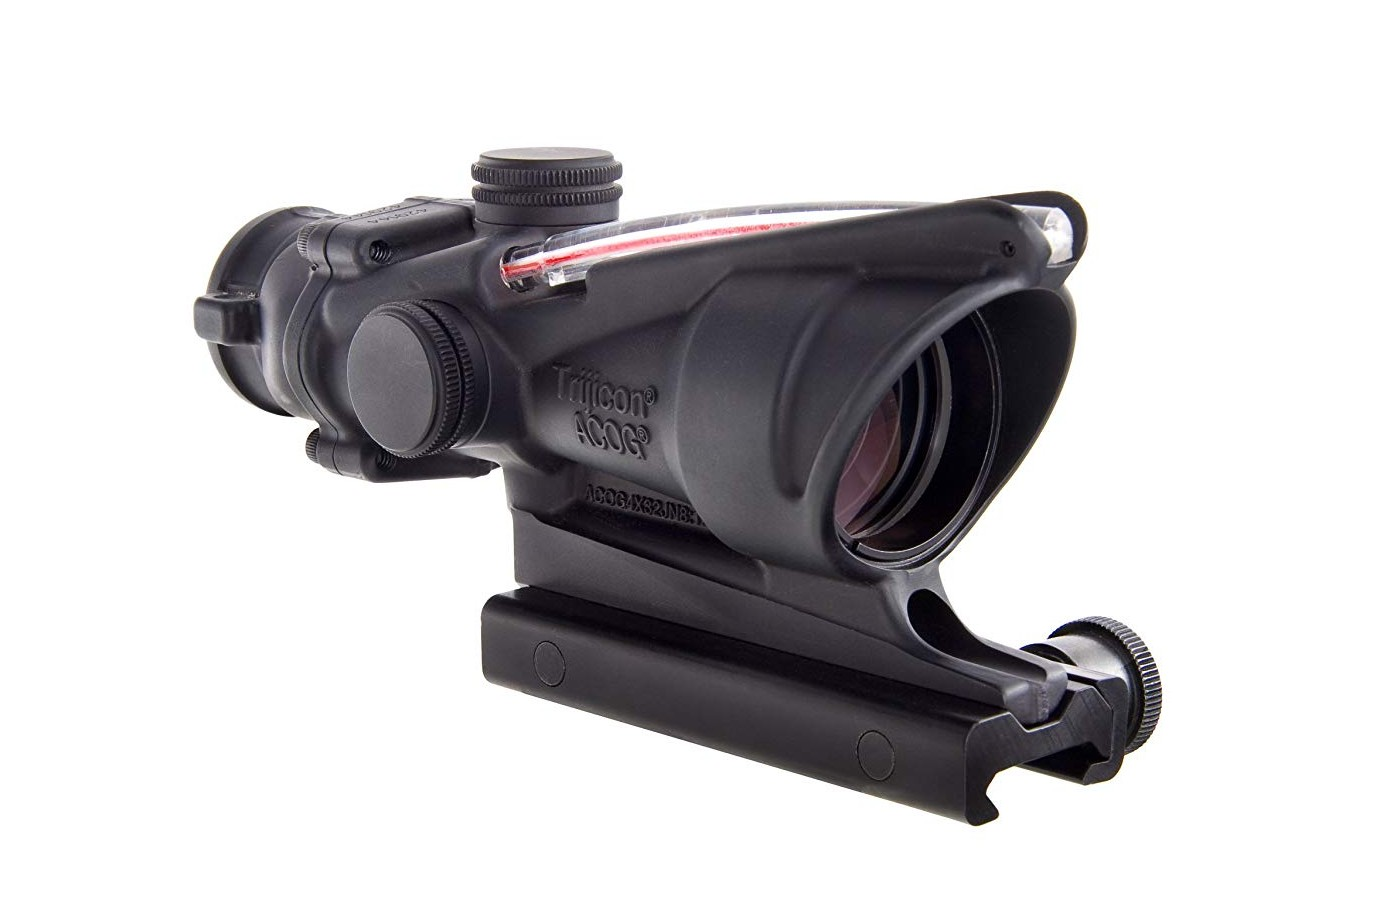 an authentic Trijicon ACOG will have this feature raised and tangible, not simply embossed or stamped on